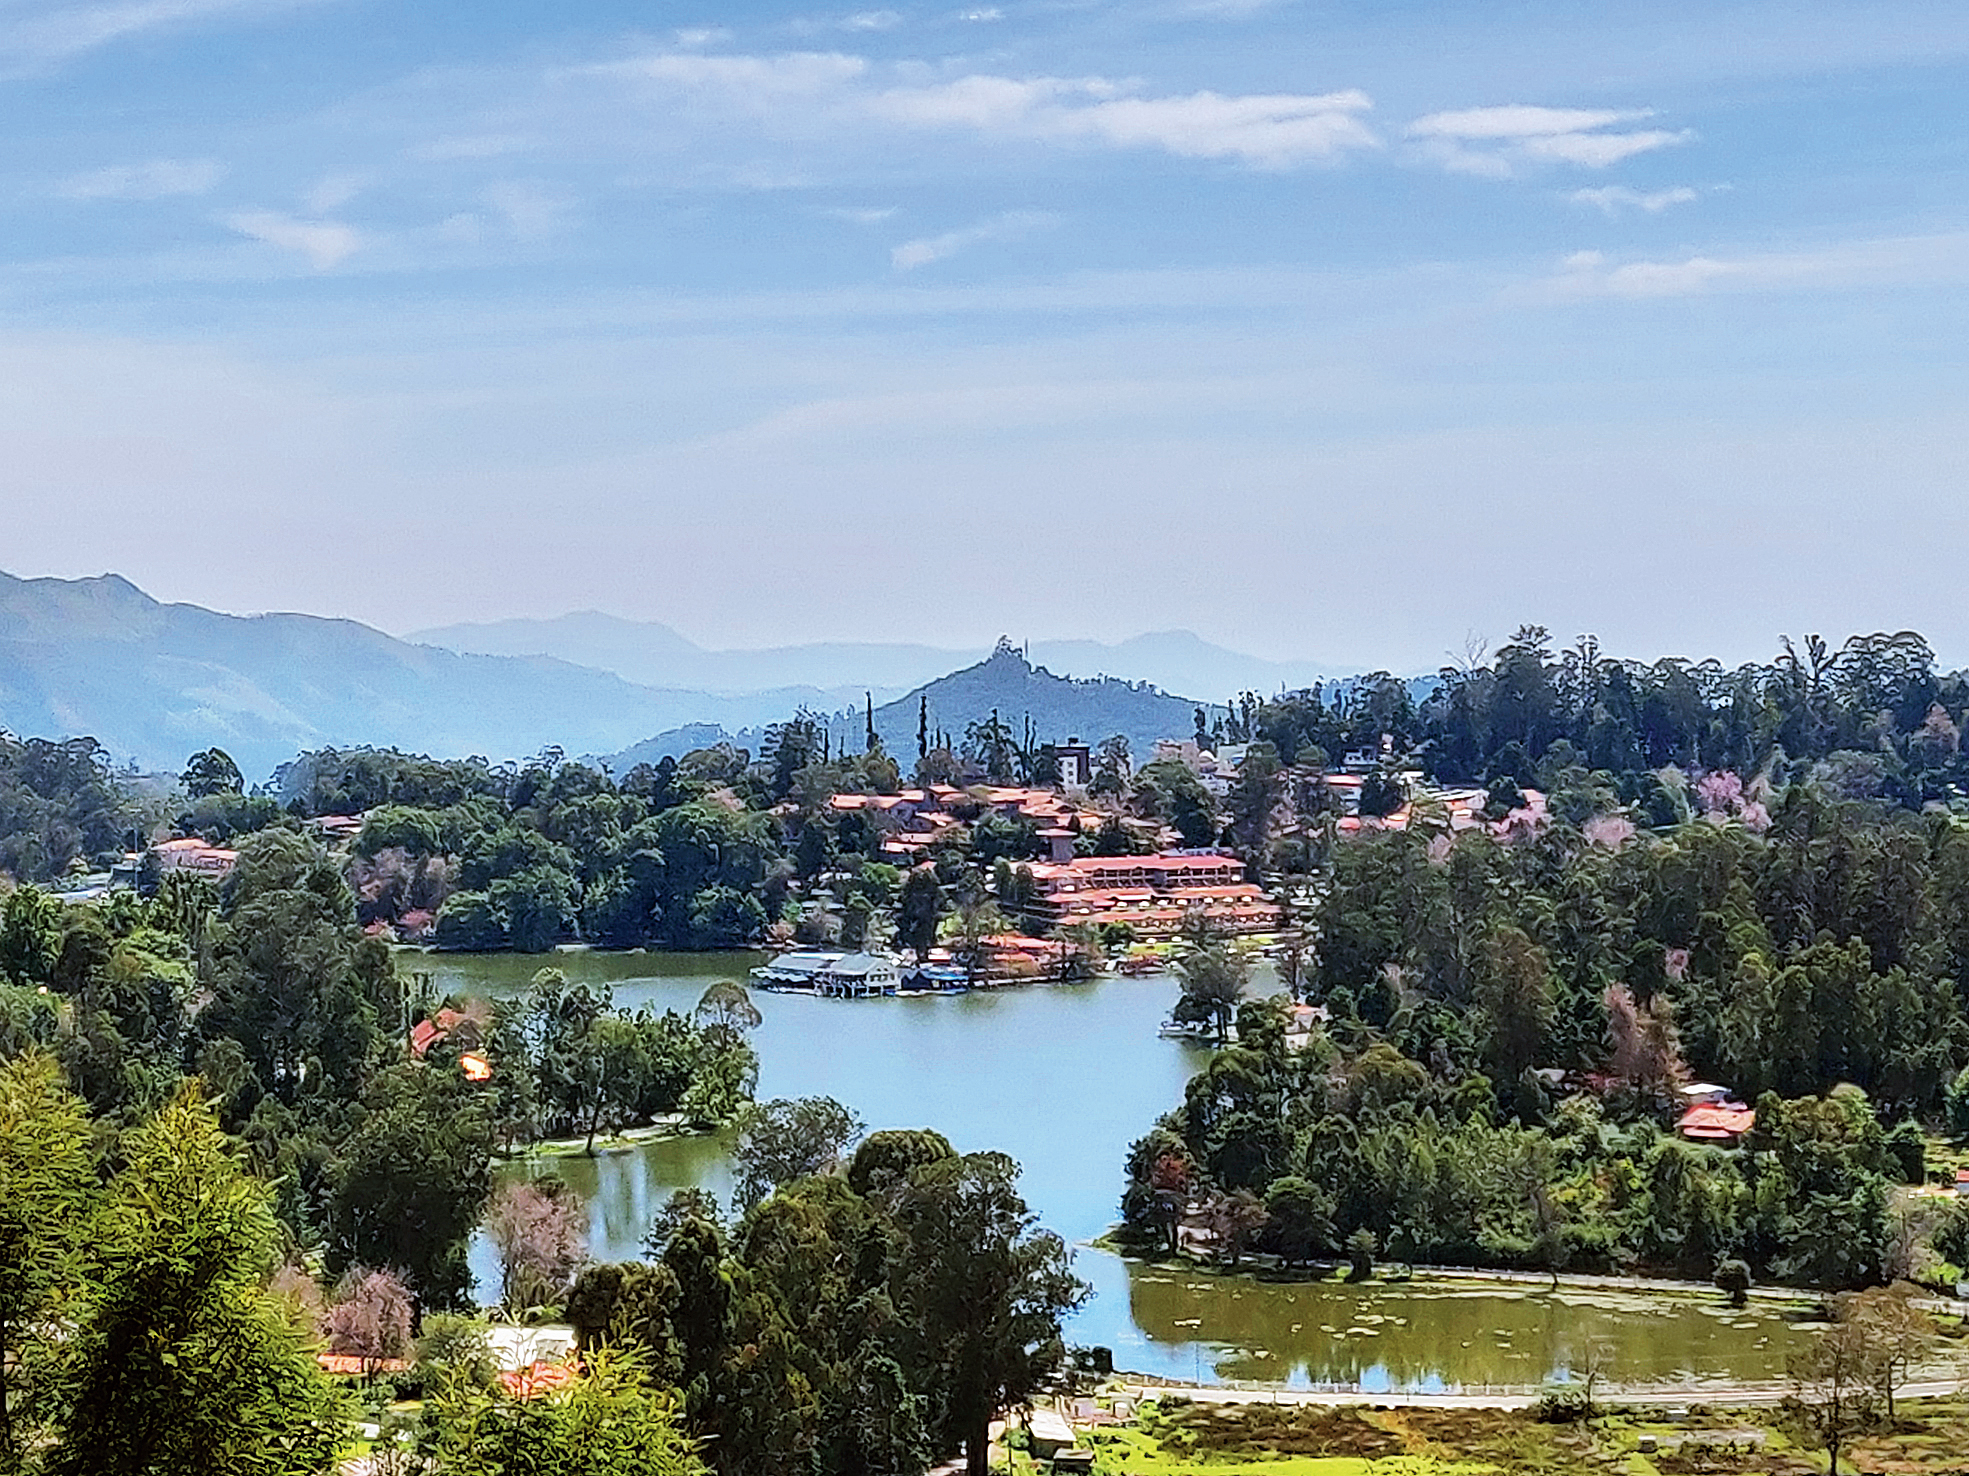 Fifteen minutes from the town and up the hill from Kodaikanal Lake is the Upper Lake View. This spot is popular as the entire star-shaped waterbody along with the surrounding hills are visible from here. The lake itself is an artificial one and was made under instruction from Sir Vere Henry Levinge, the collector of Madurai, in 1863